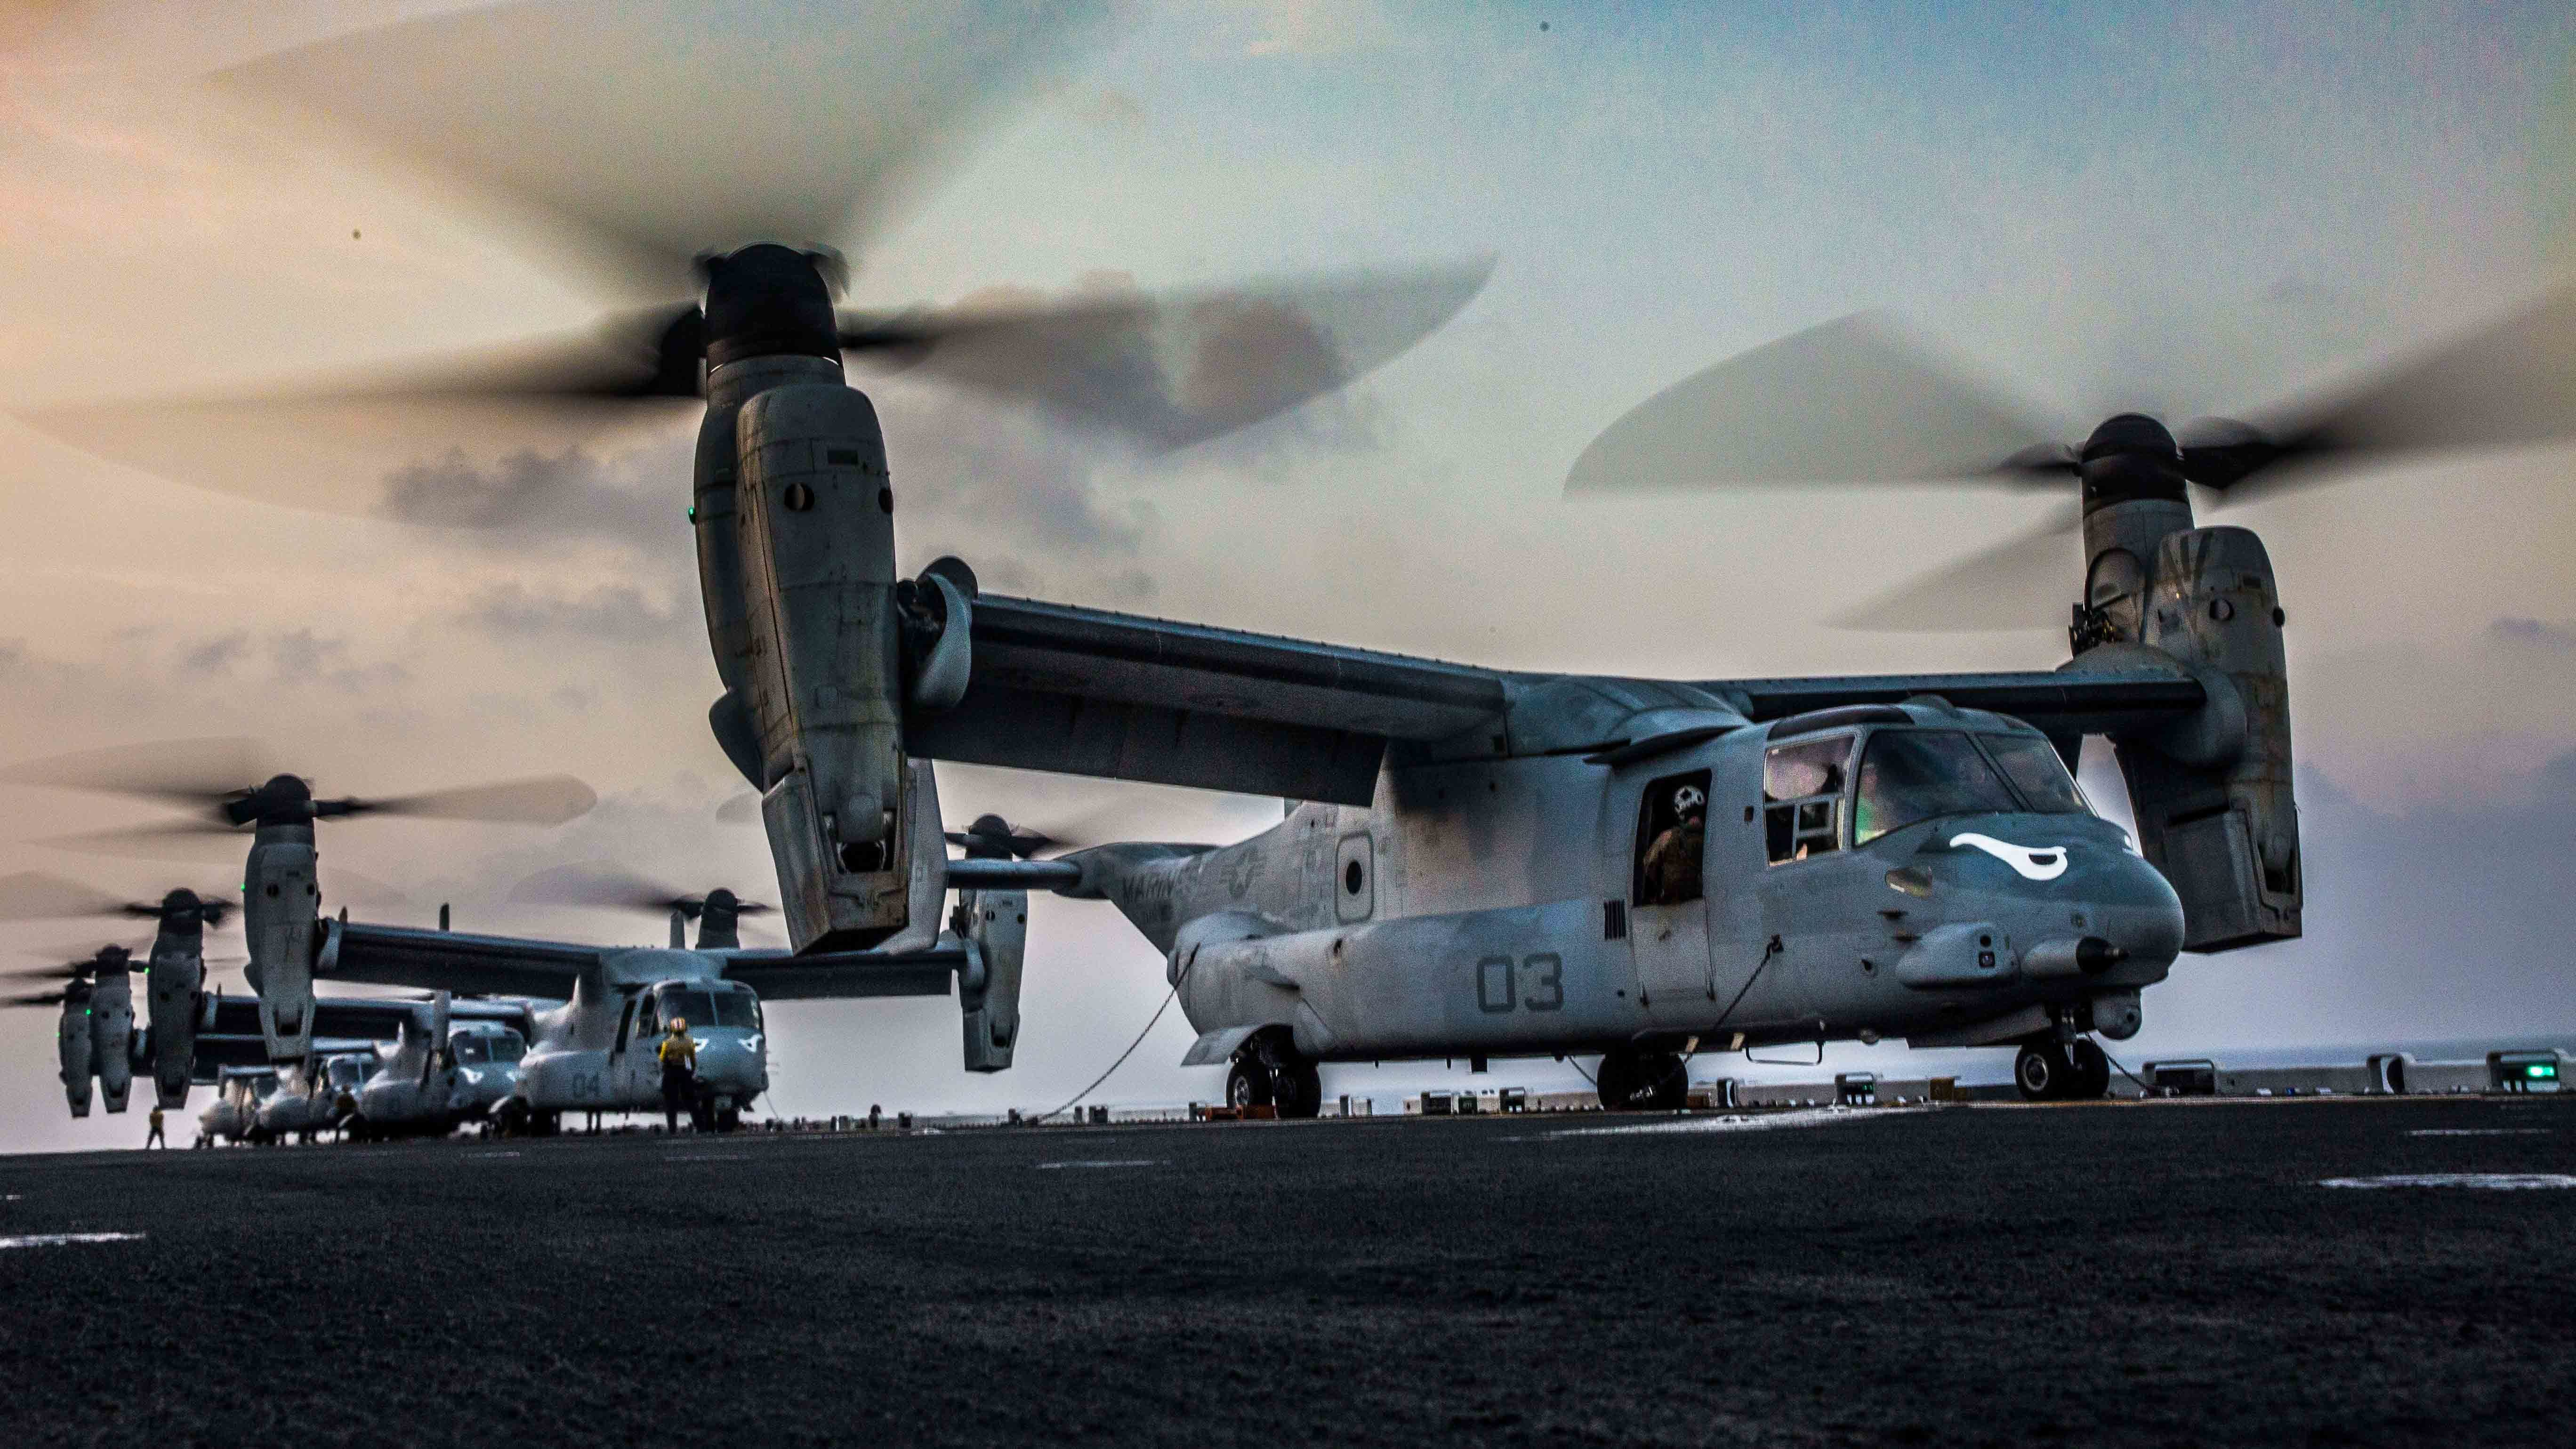 U.S. Marine MV-22 Ospreys, assigned to the Ridge Runners of Marine Medium Tiltrotor Squadron 163 (Reinforced), prepare to takeoff from the flight deck of the amphibious assault ship USS Makin Island (LHD 8) in support of a helo-borne raid during Exercise Alligator Dagger, in the Gulf of Aden, Dec. 21, 2016. US Navy photo.